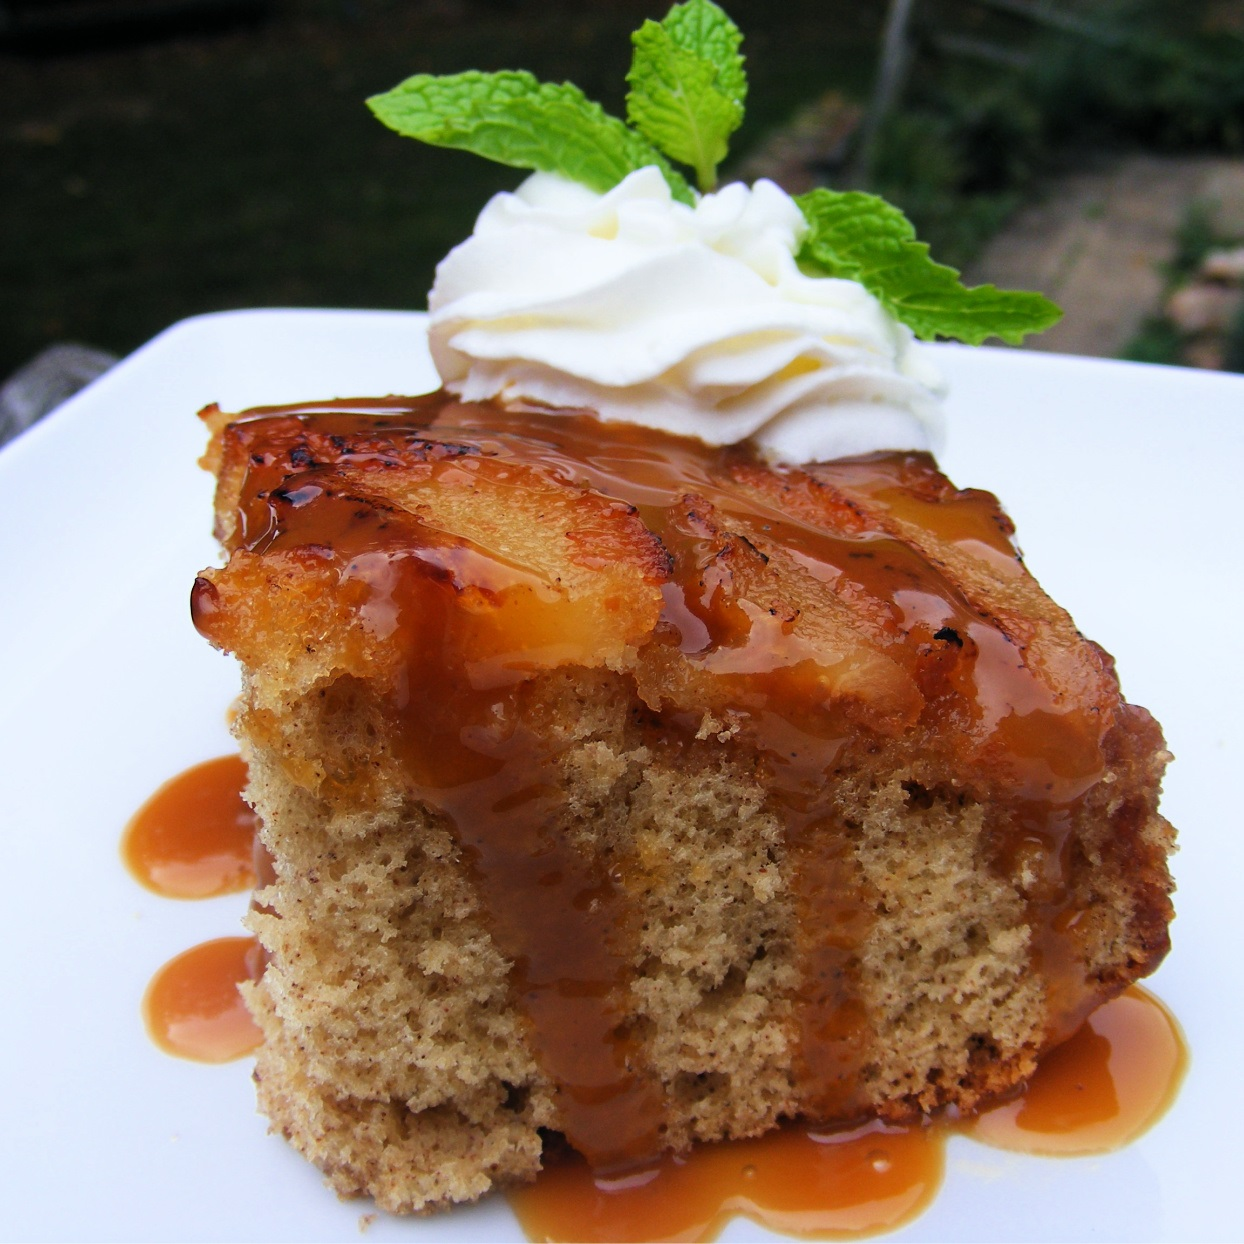 spice cake with sliced pears, whipped cream, and caramel drizzle